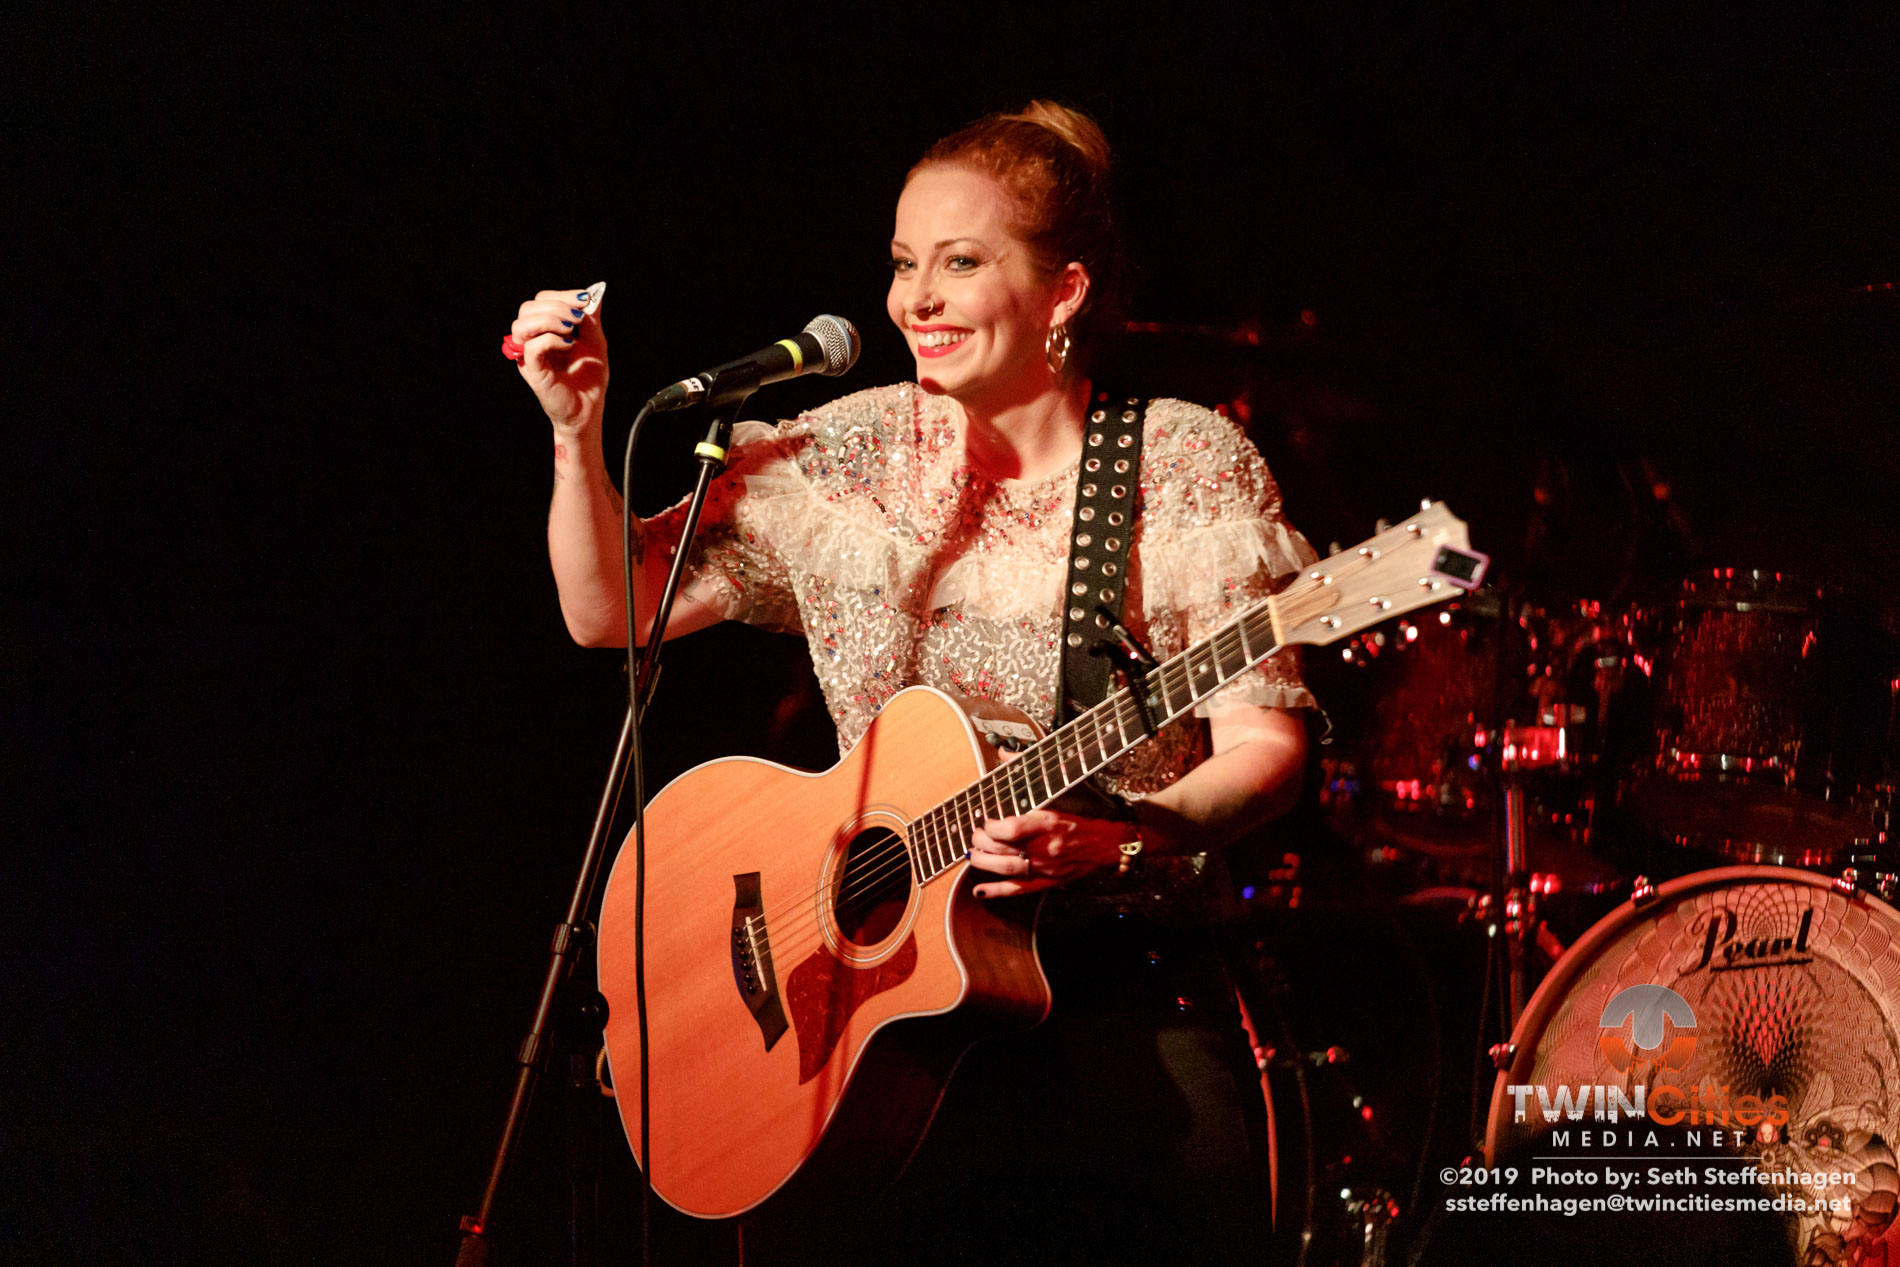 September 30, 2019 - Minneapolis, Minnesota, United States -  Anneke Van Giersbergen live in concert at The Cabooze opening for Delain and Amorphis.  (Photo by Seth Steffenhagen/Steffenhagen Photography)